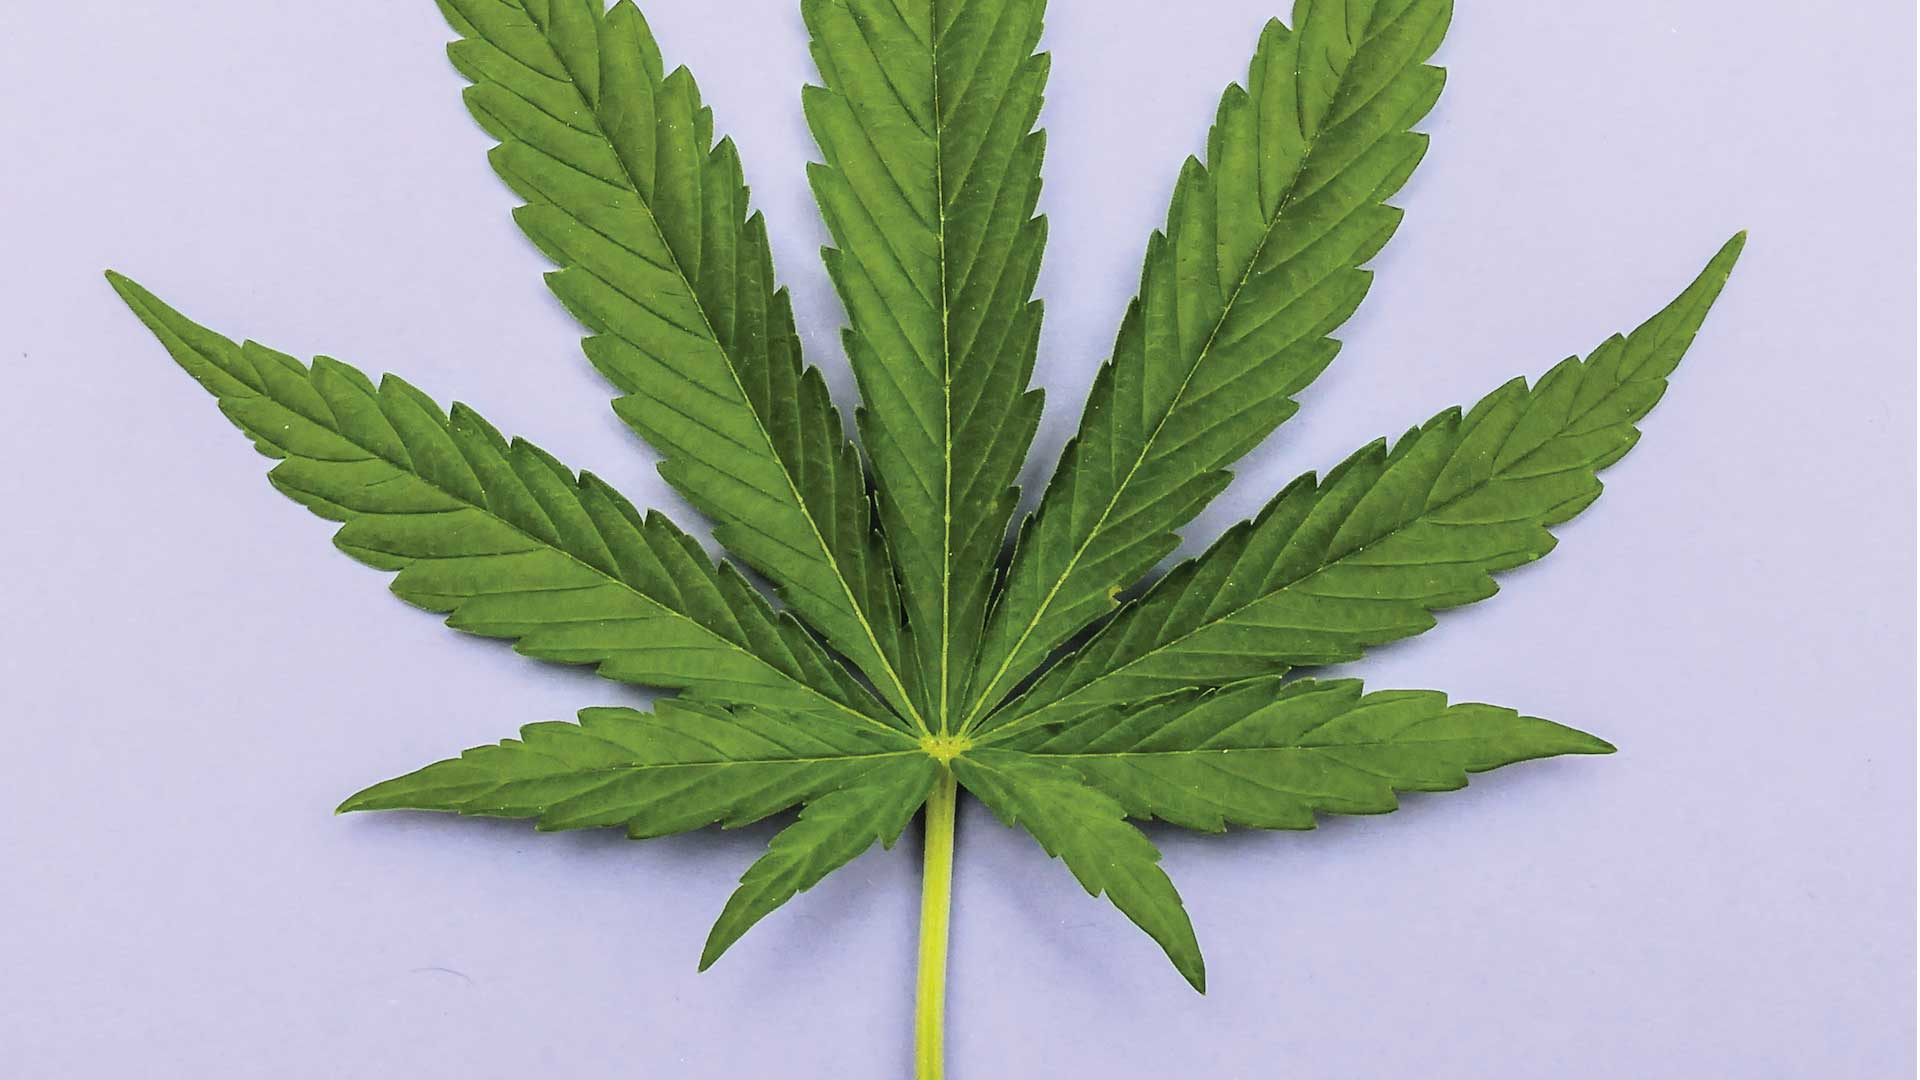 Cannabinoid Hyperemesis Syndrome: A Danger or Not?